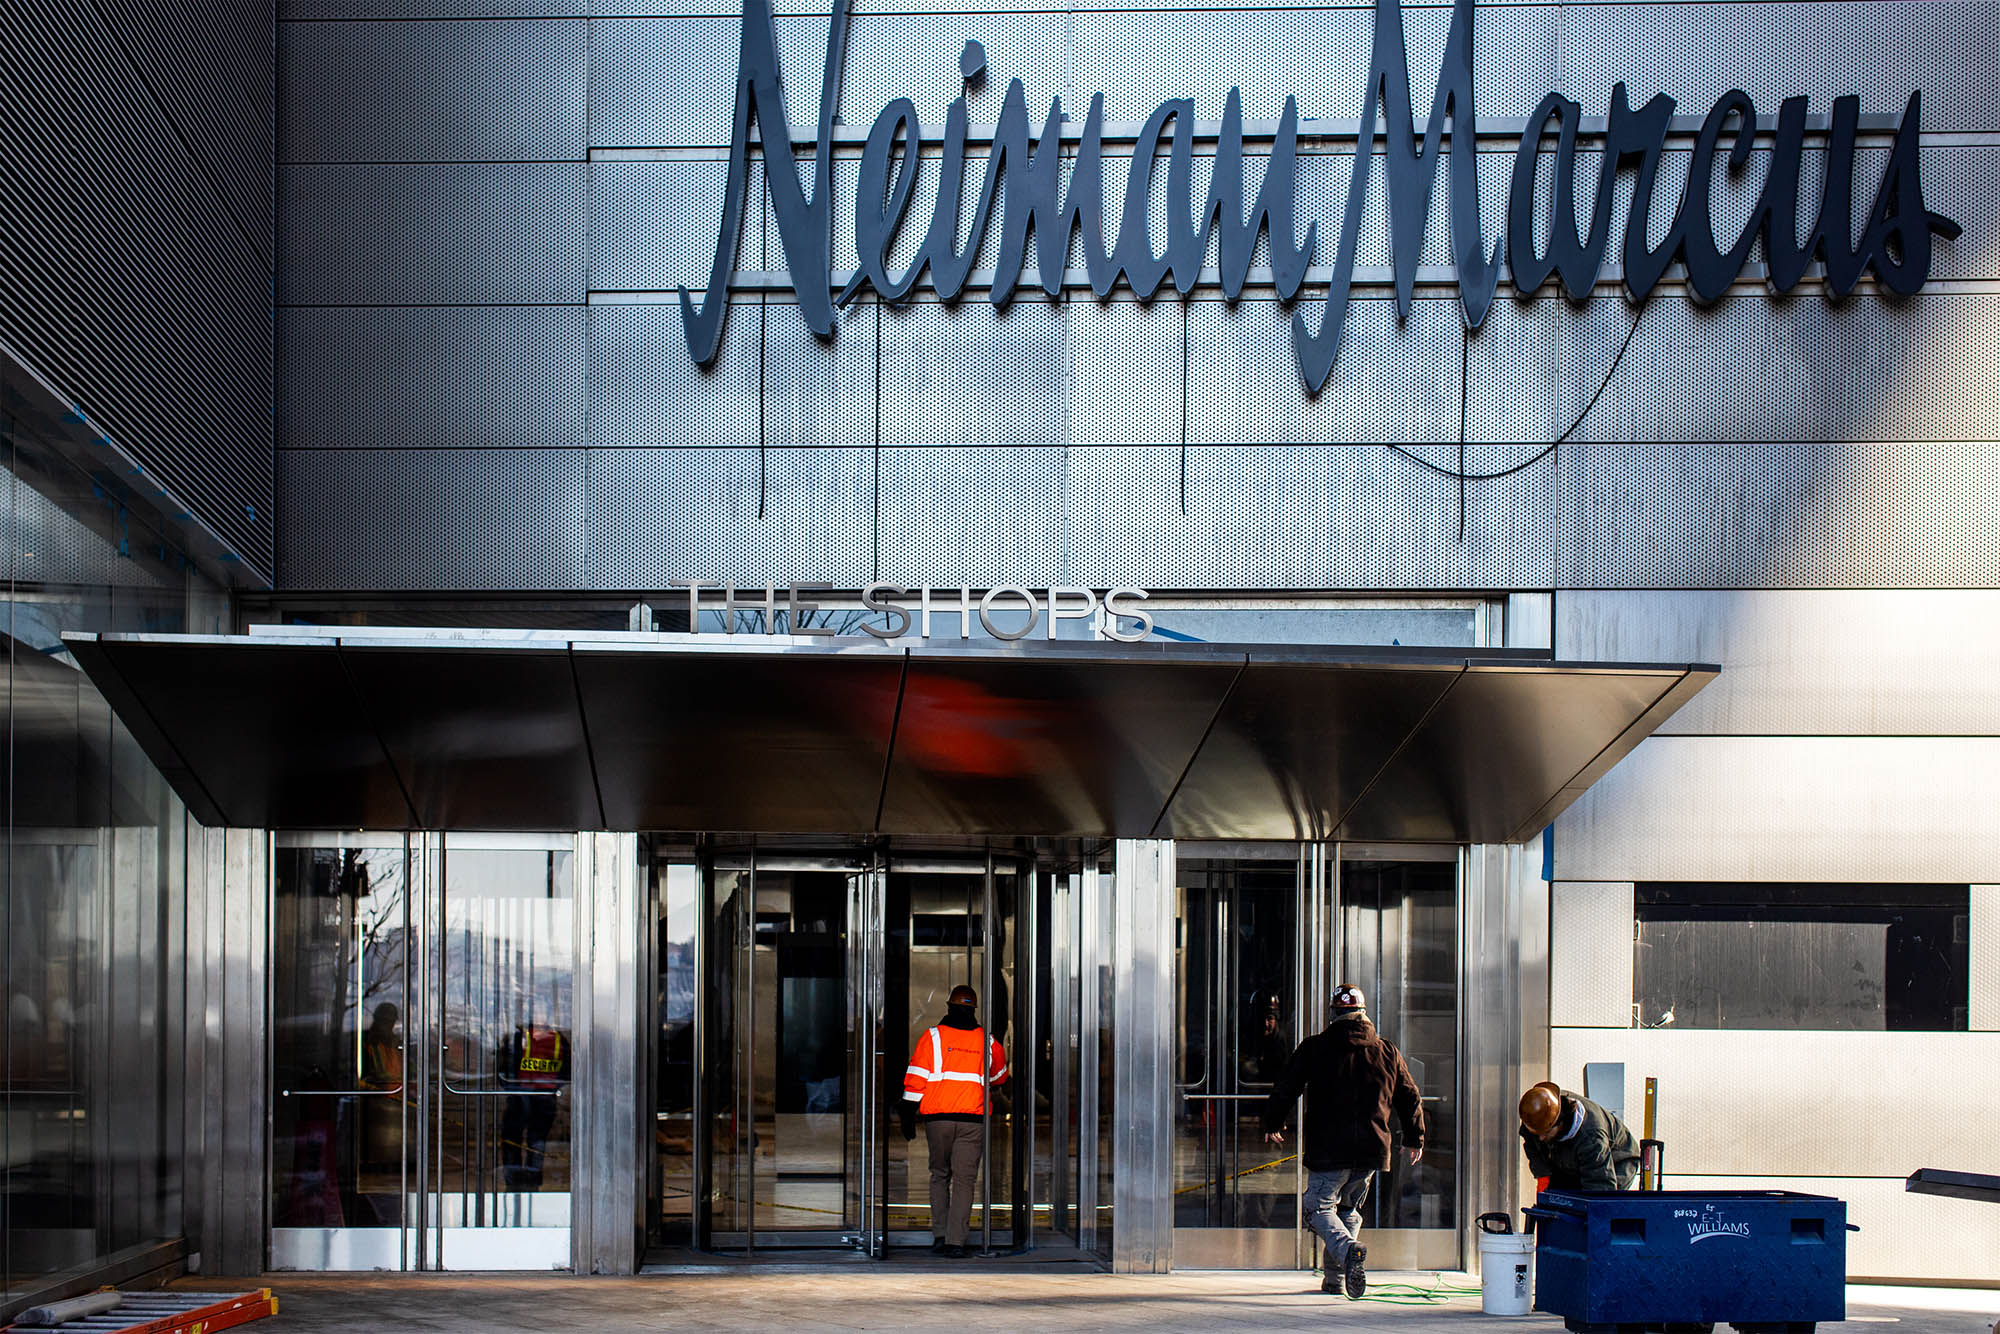 A contractor enters the Neiman Marcus store at the Hudson Yards development in New York